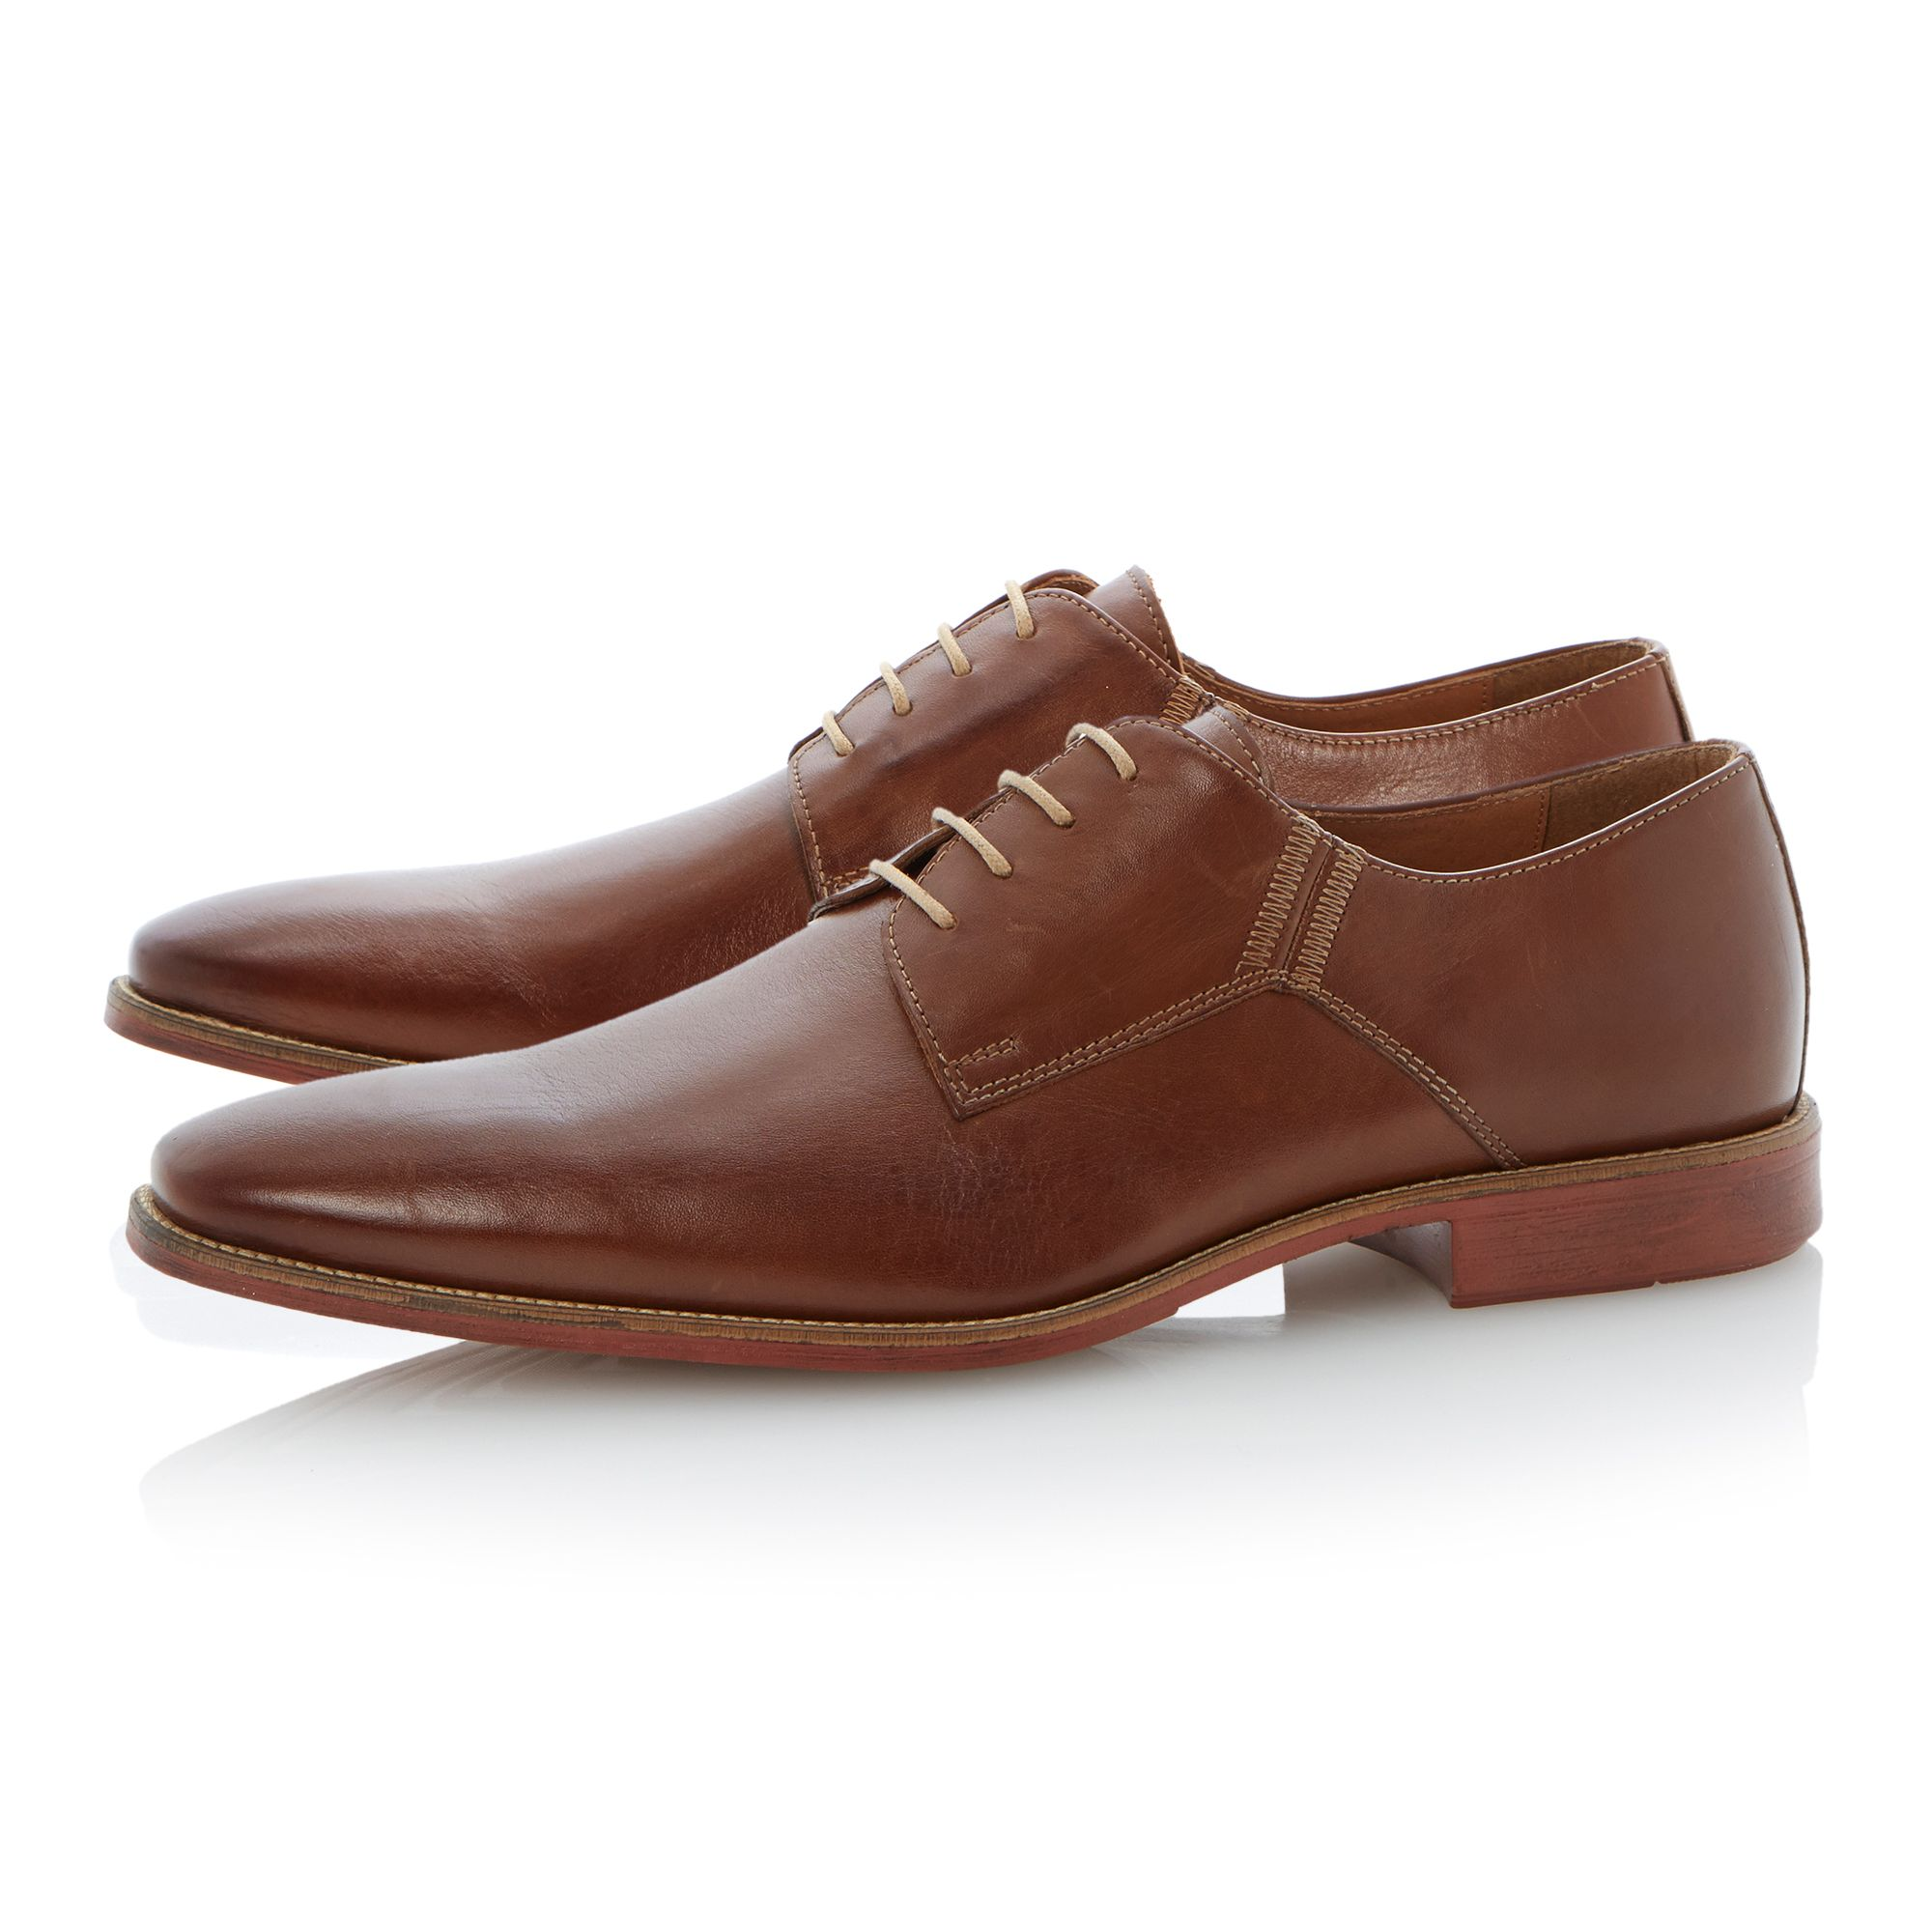 Belgravia contrast stitch chisel lace up